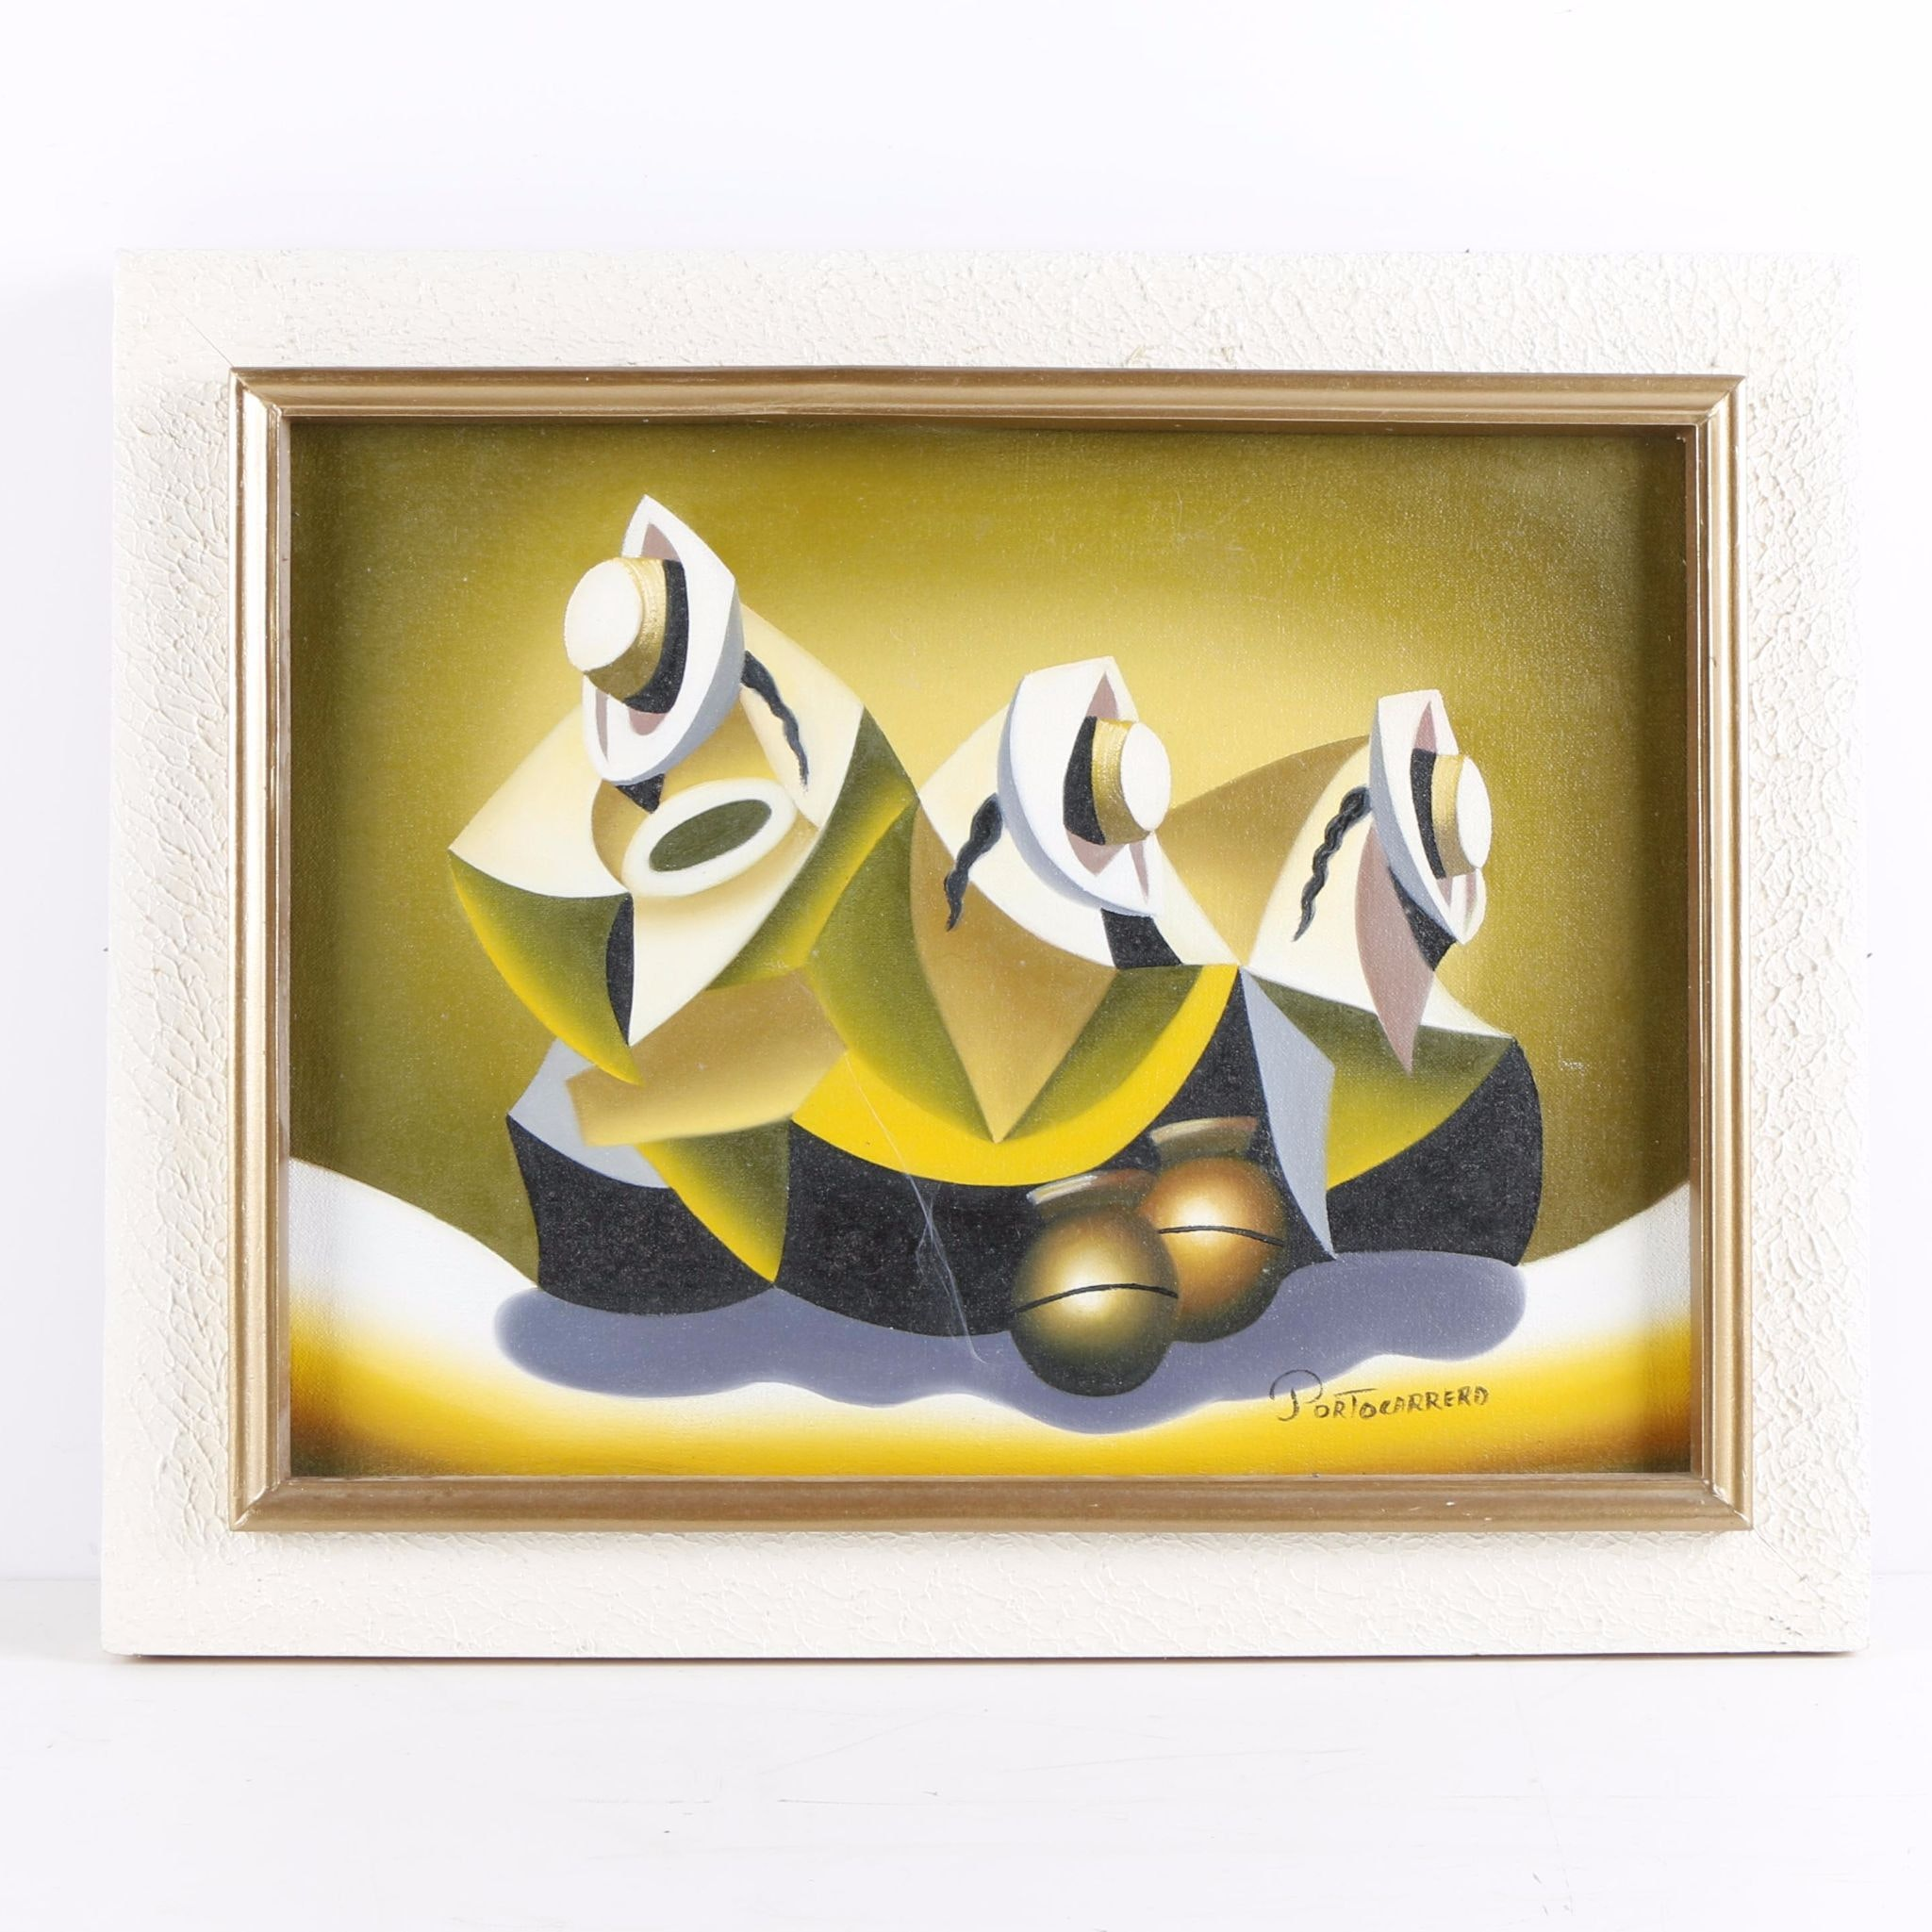 Portocarrero Oil Painting of Three Abstract Figures